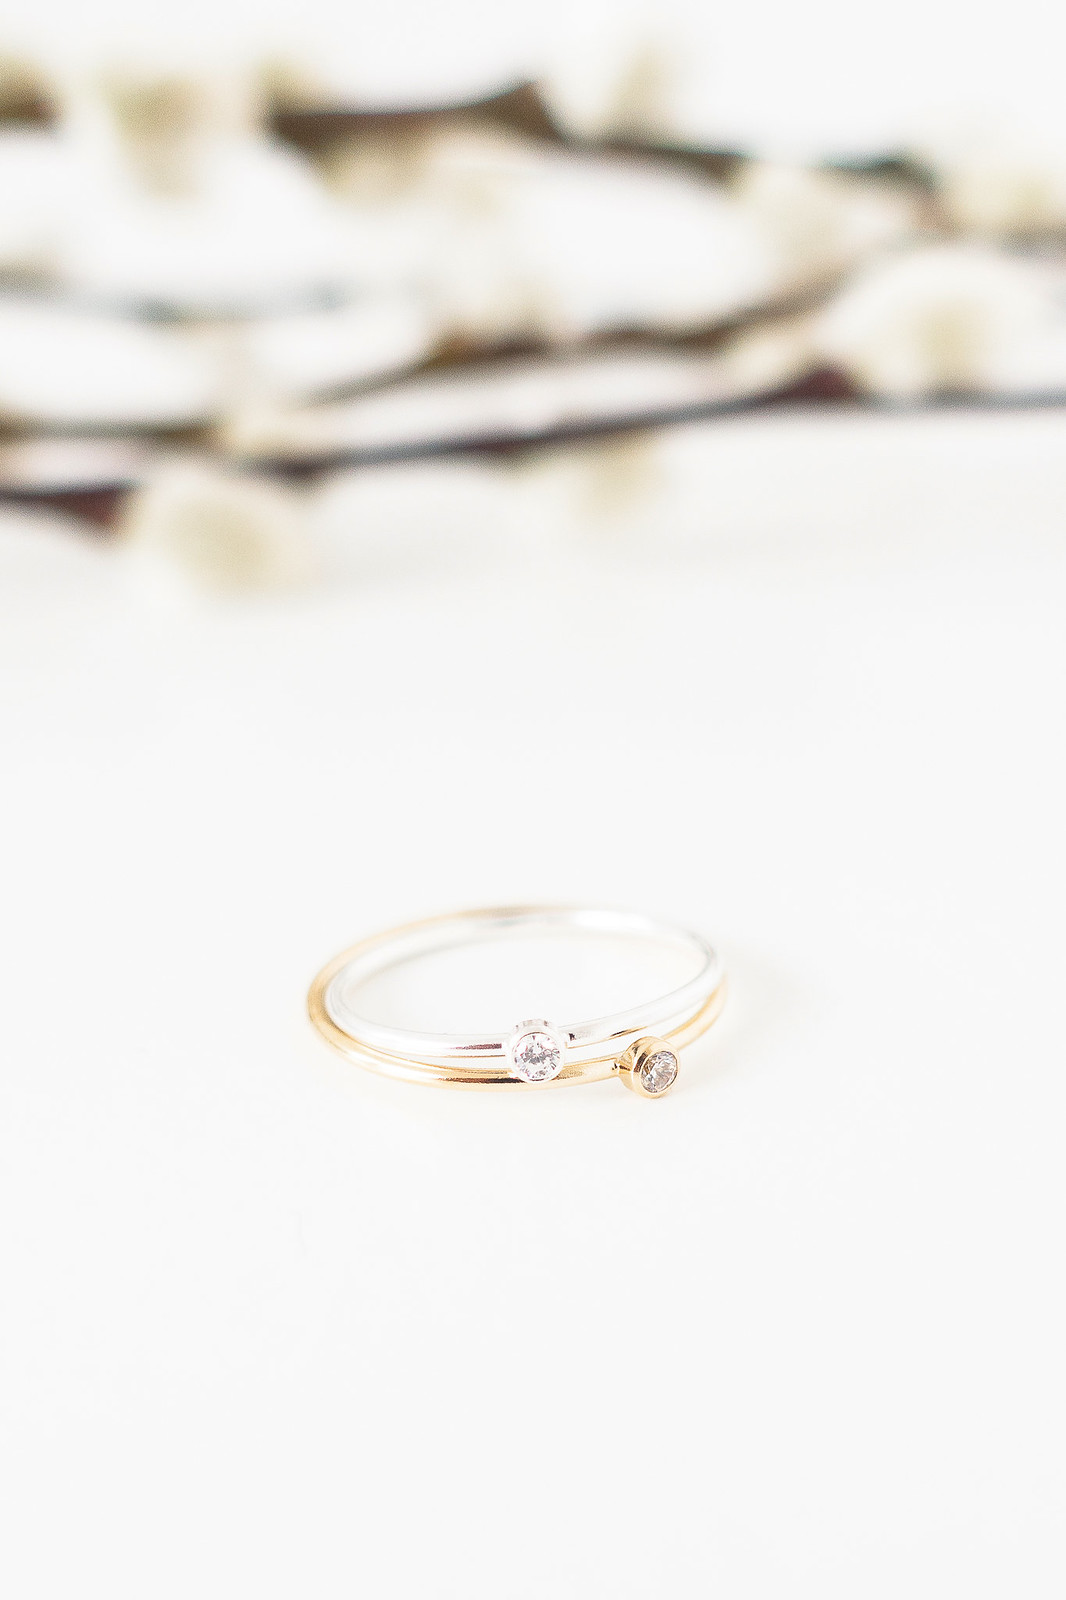 Introducing: The Diamond Ring